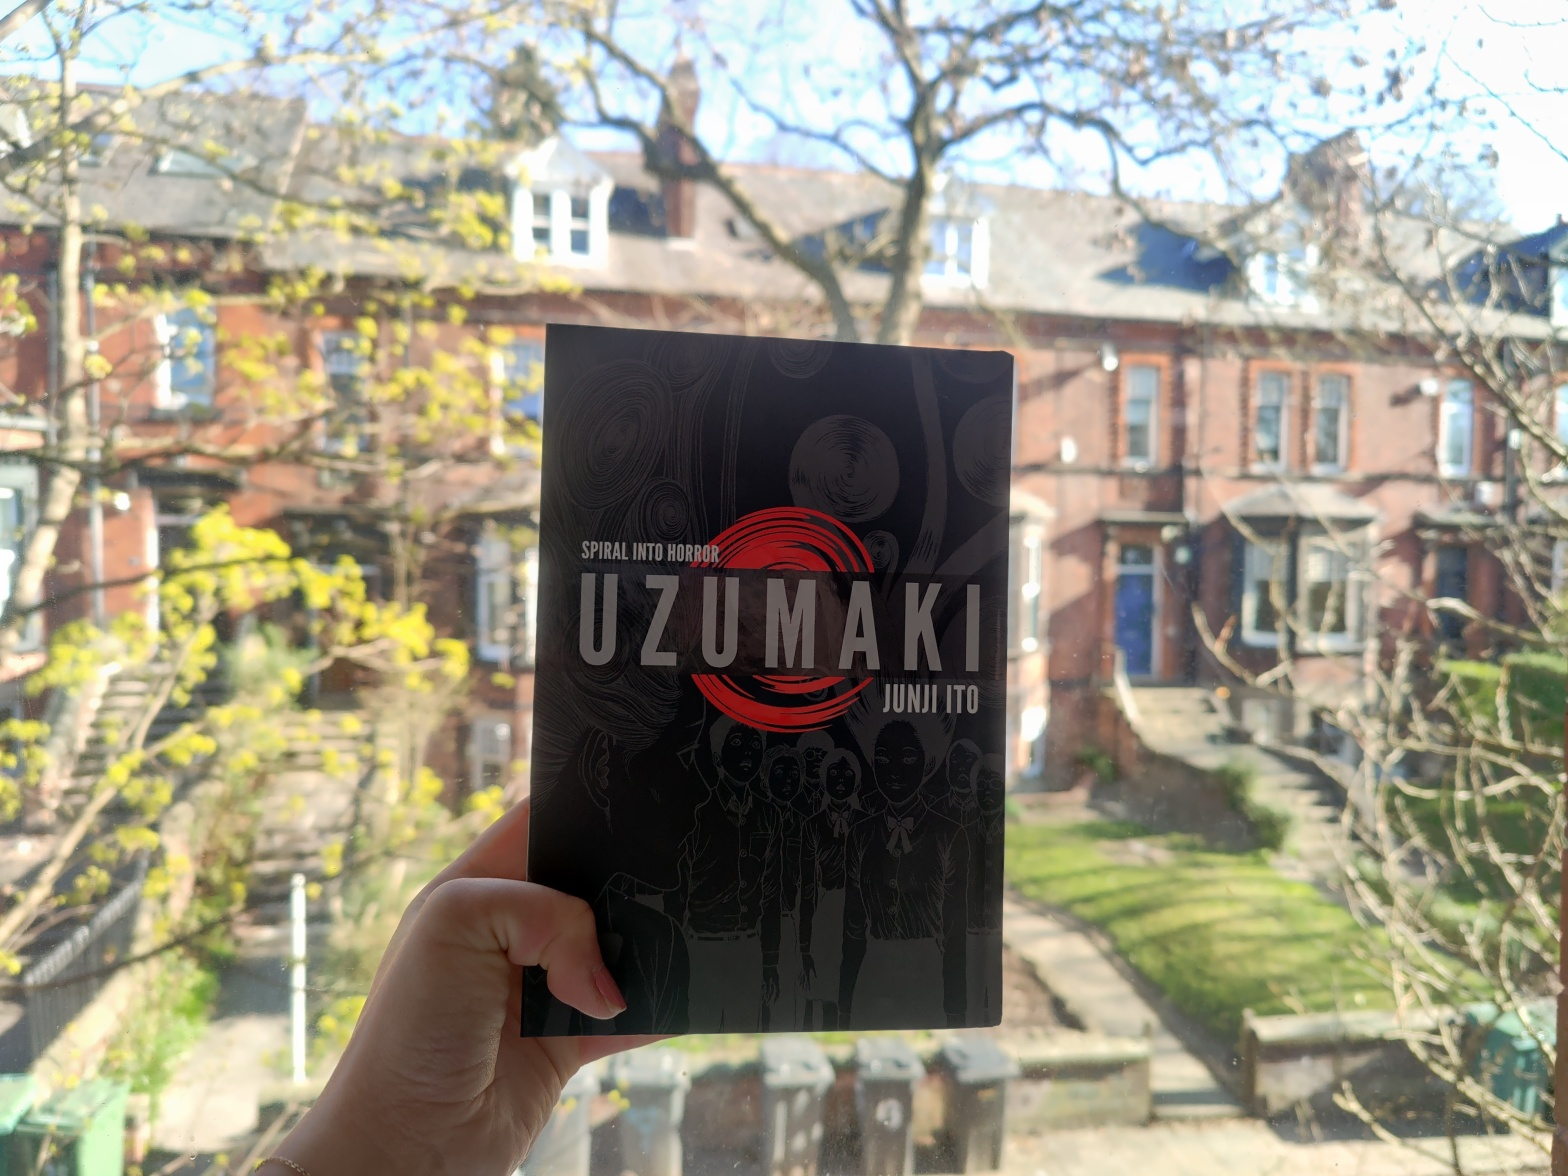 Uzumaki manga held against a bright window on a sunny day, with red-brick buildings in the background